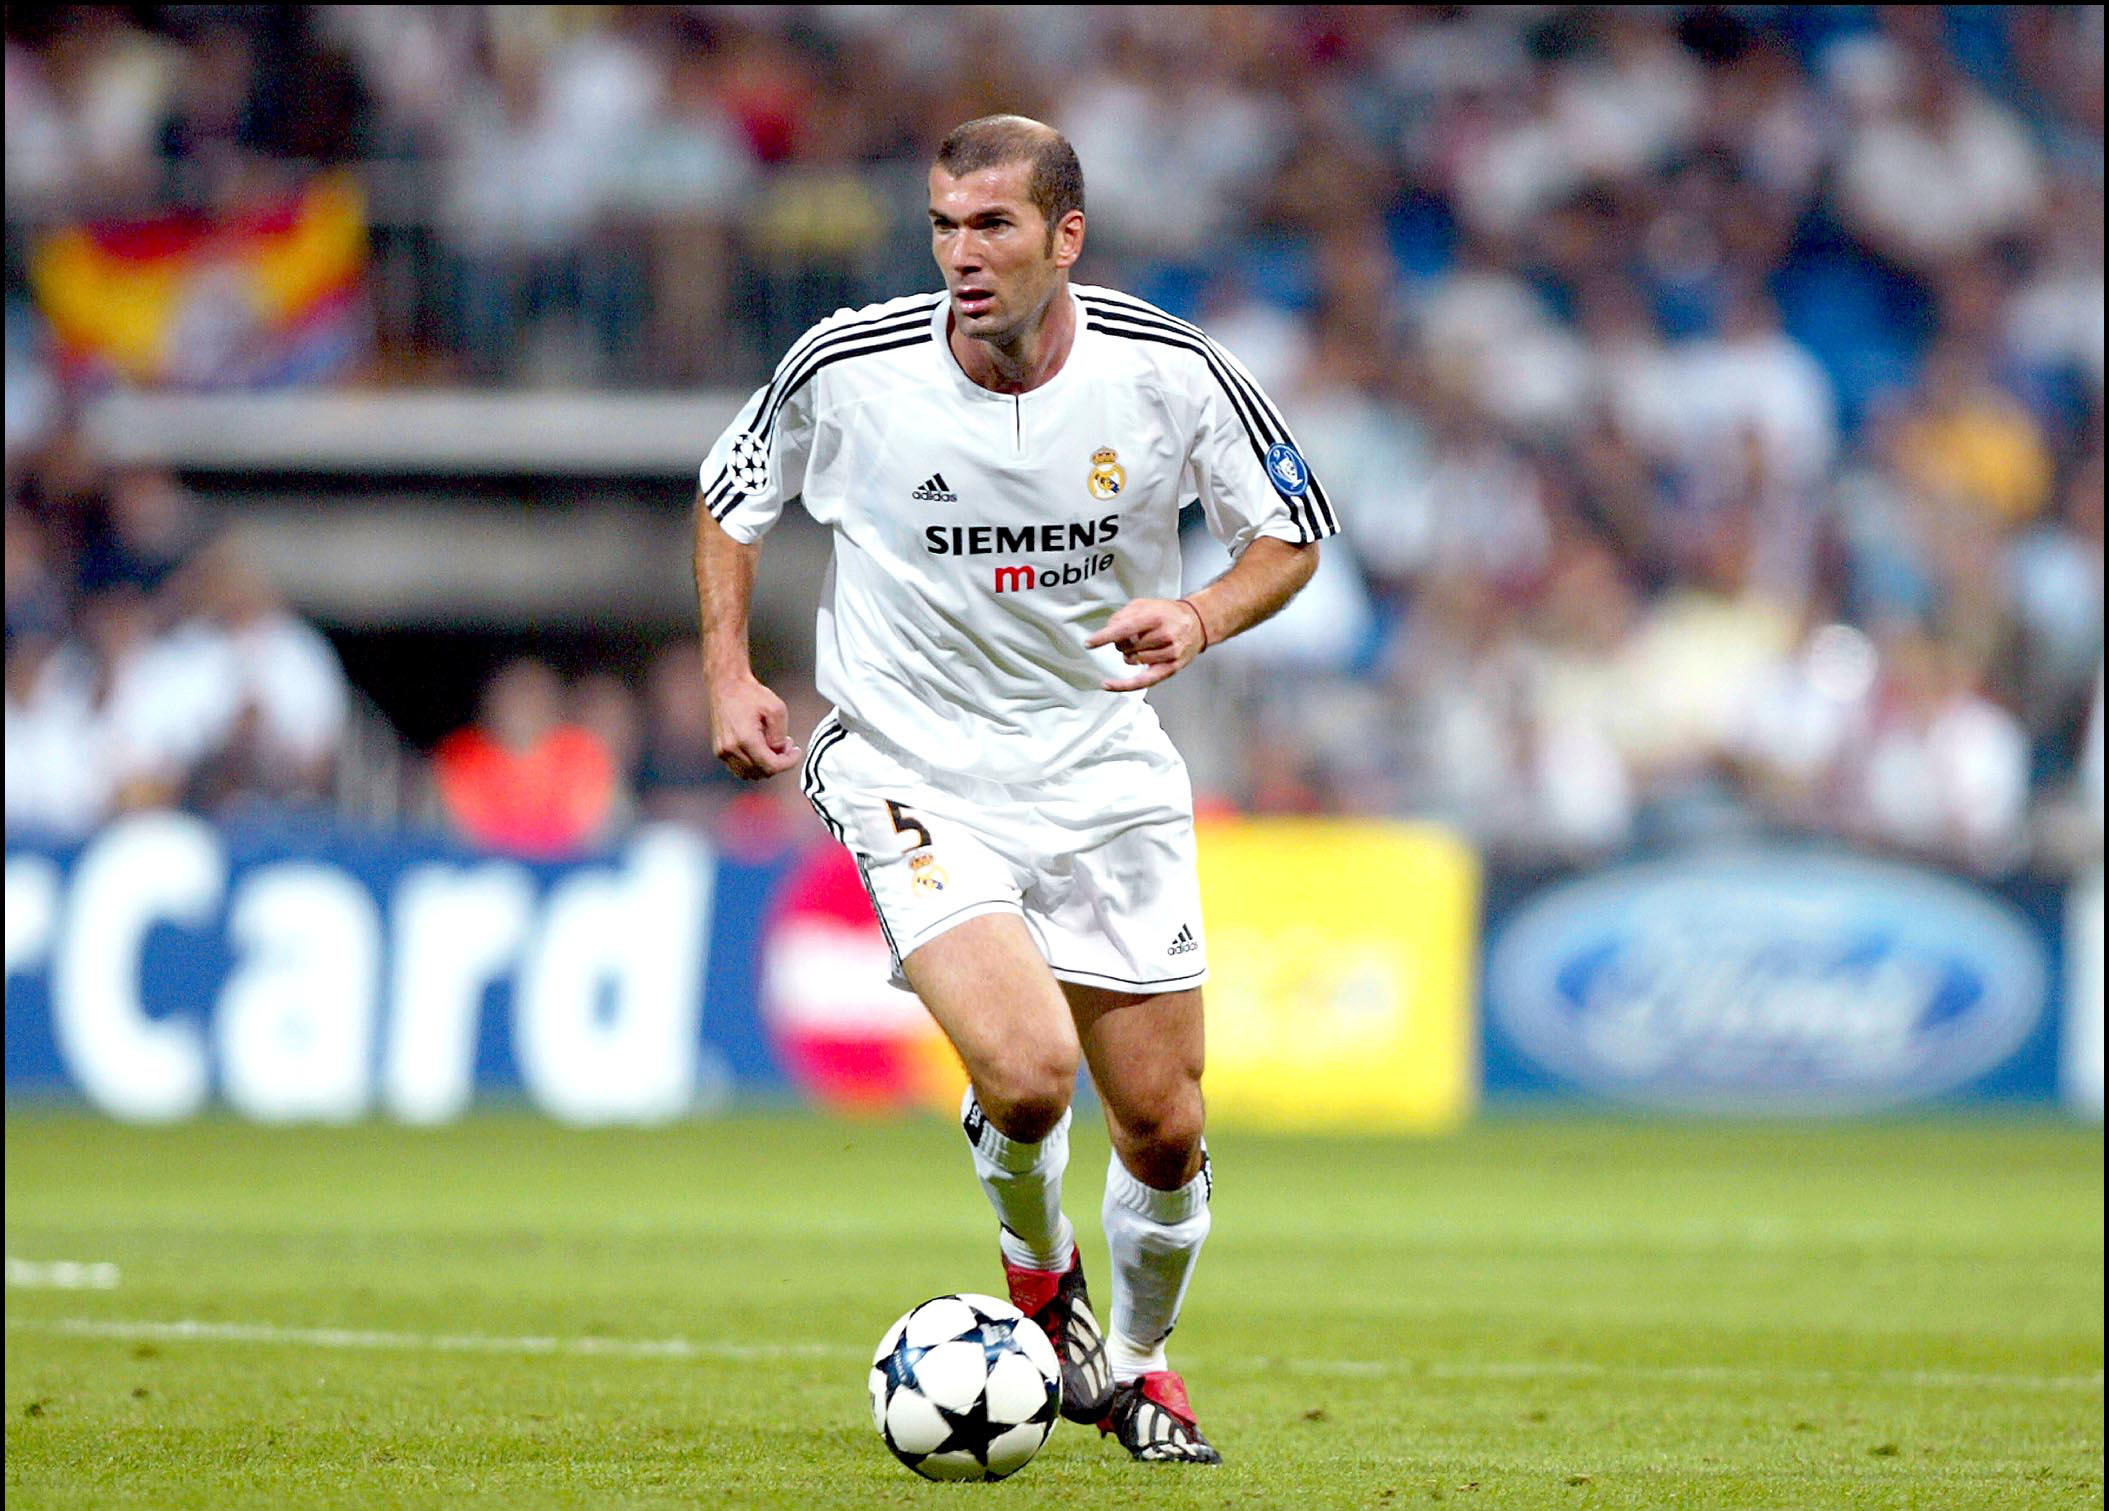 Zidane in action for Real Madrid. Image PA